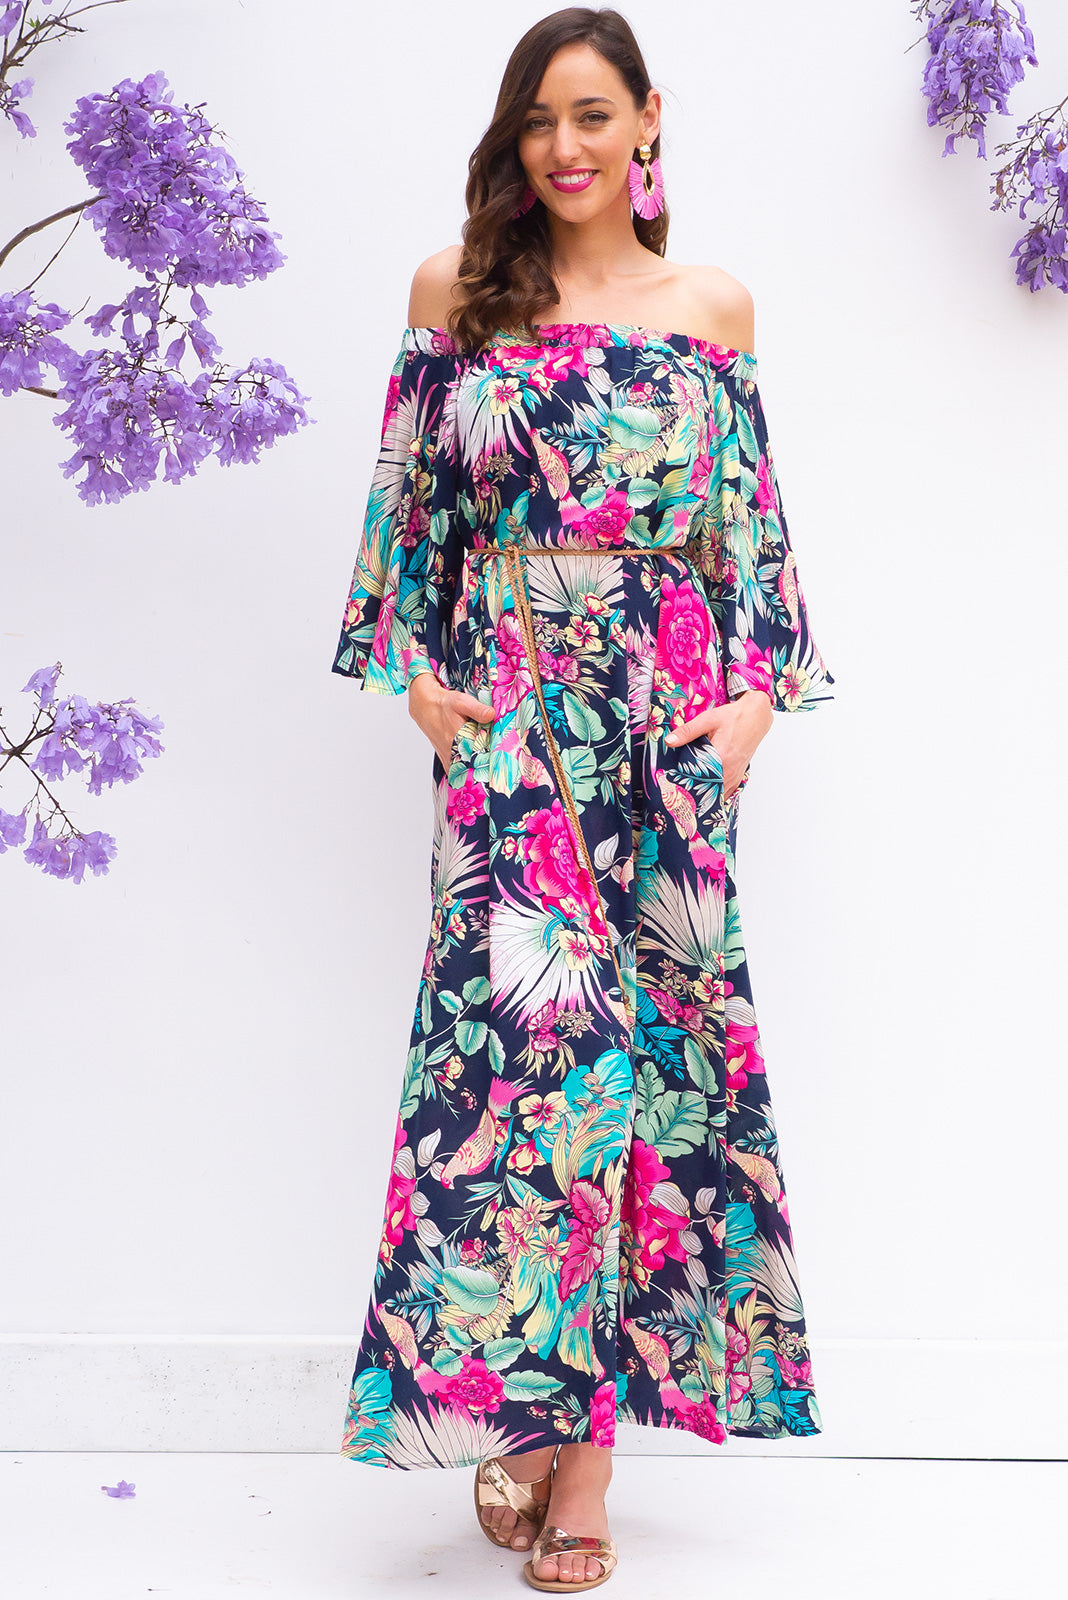 Mimosa Bird of Paradise Maxi Dress off the shoulder soft fit maxi dress in a bright navy tropical leaf floral print on 100% rayon with side pockets